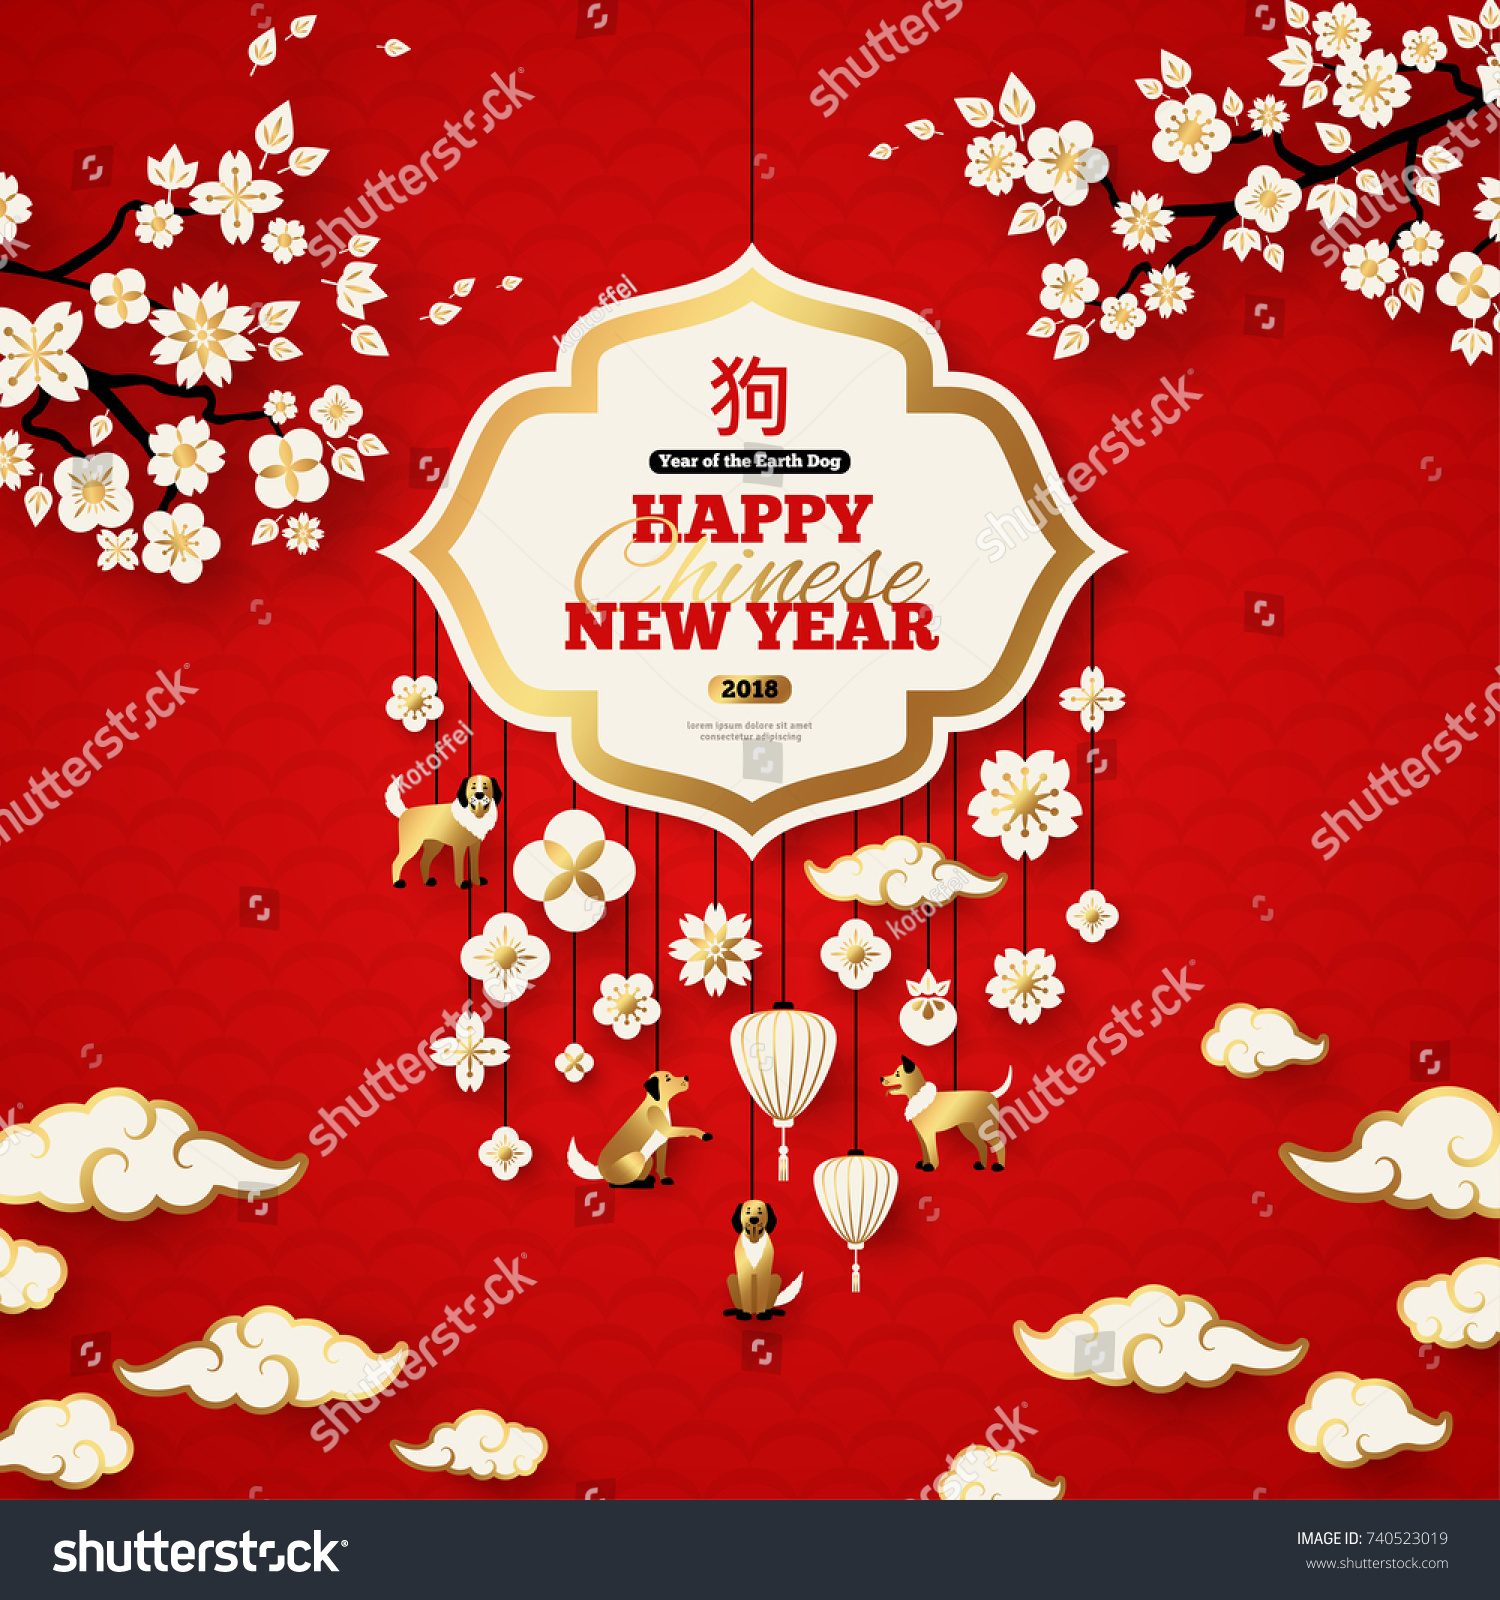 2018 chinese new year greeting card stock vector royalty free 2018 chinese new year greeting card with white frame sakura branches and asian clouds on m4hsunfo